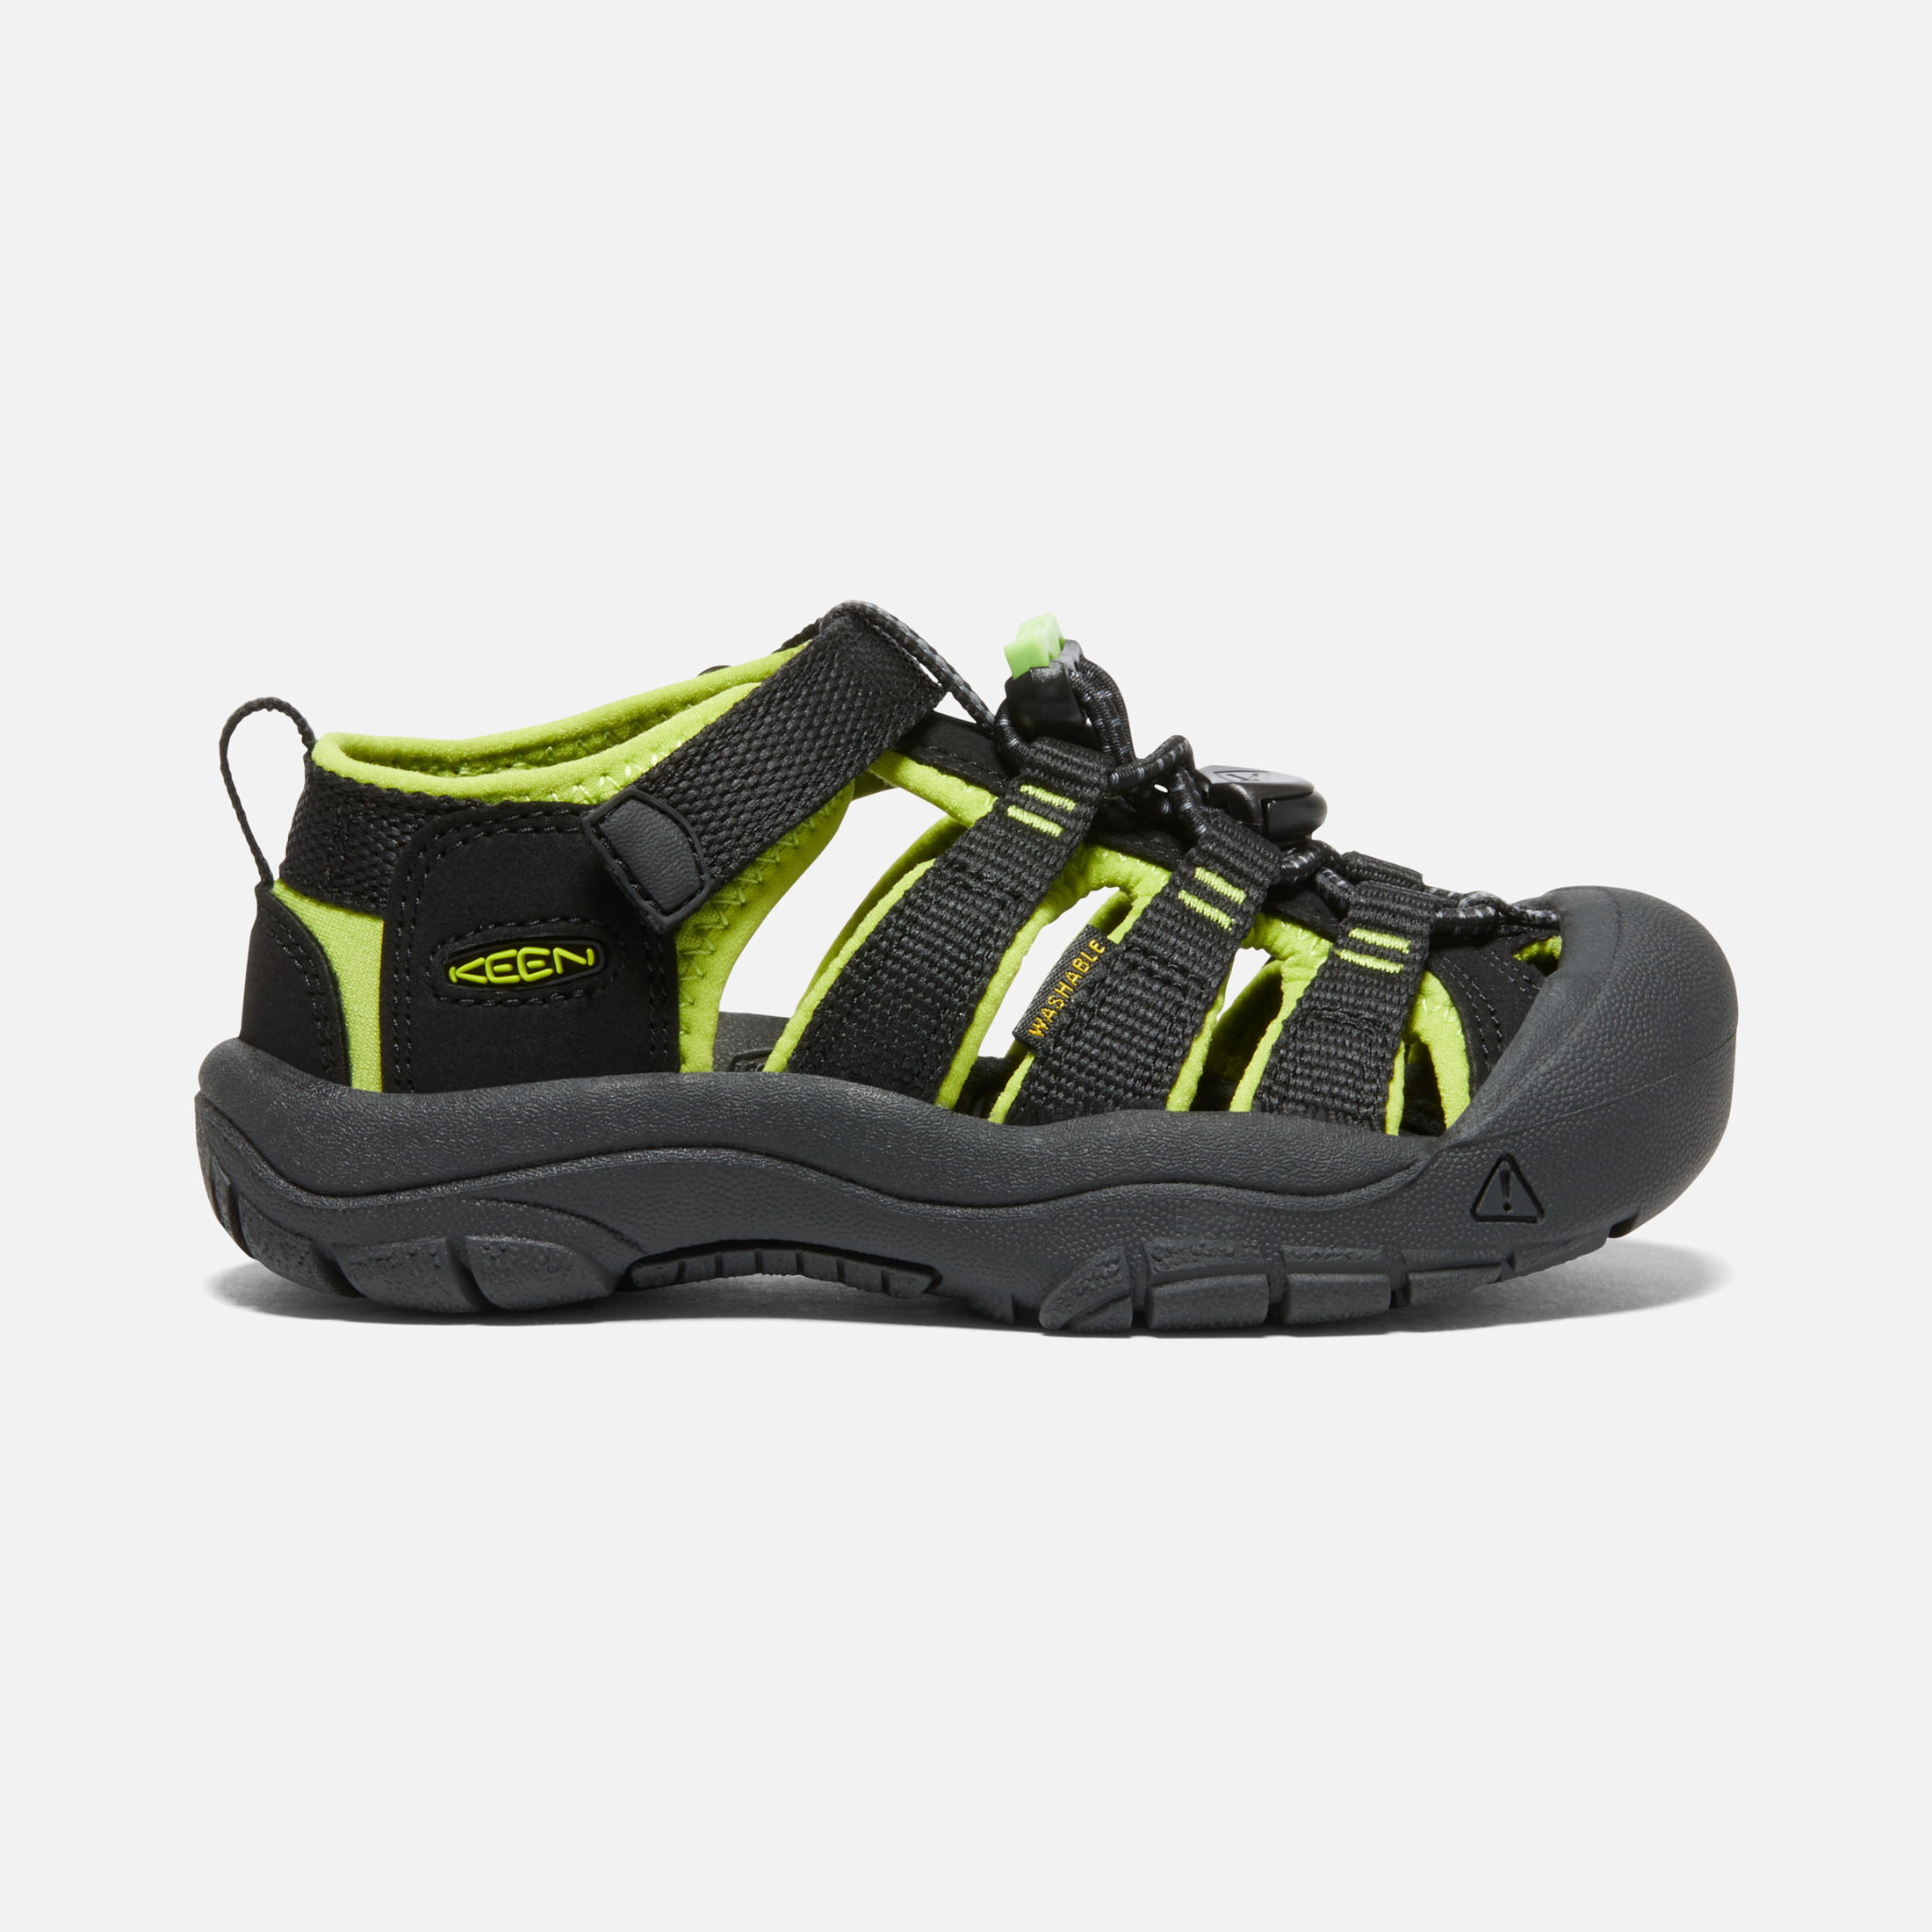 0db23ad44a3 Toddlers' Newport H2 Sandals - Easy-On/Off | KEEN Footwear